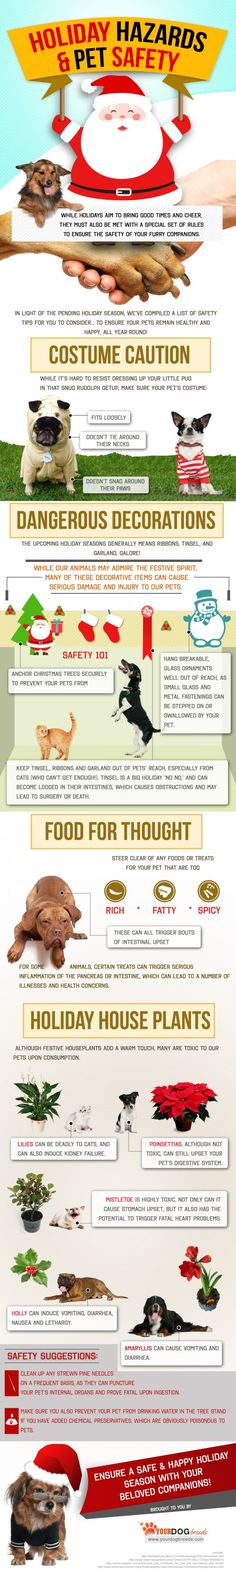 Keeping your pets safe during the holidays. Great info Animal safety